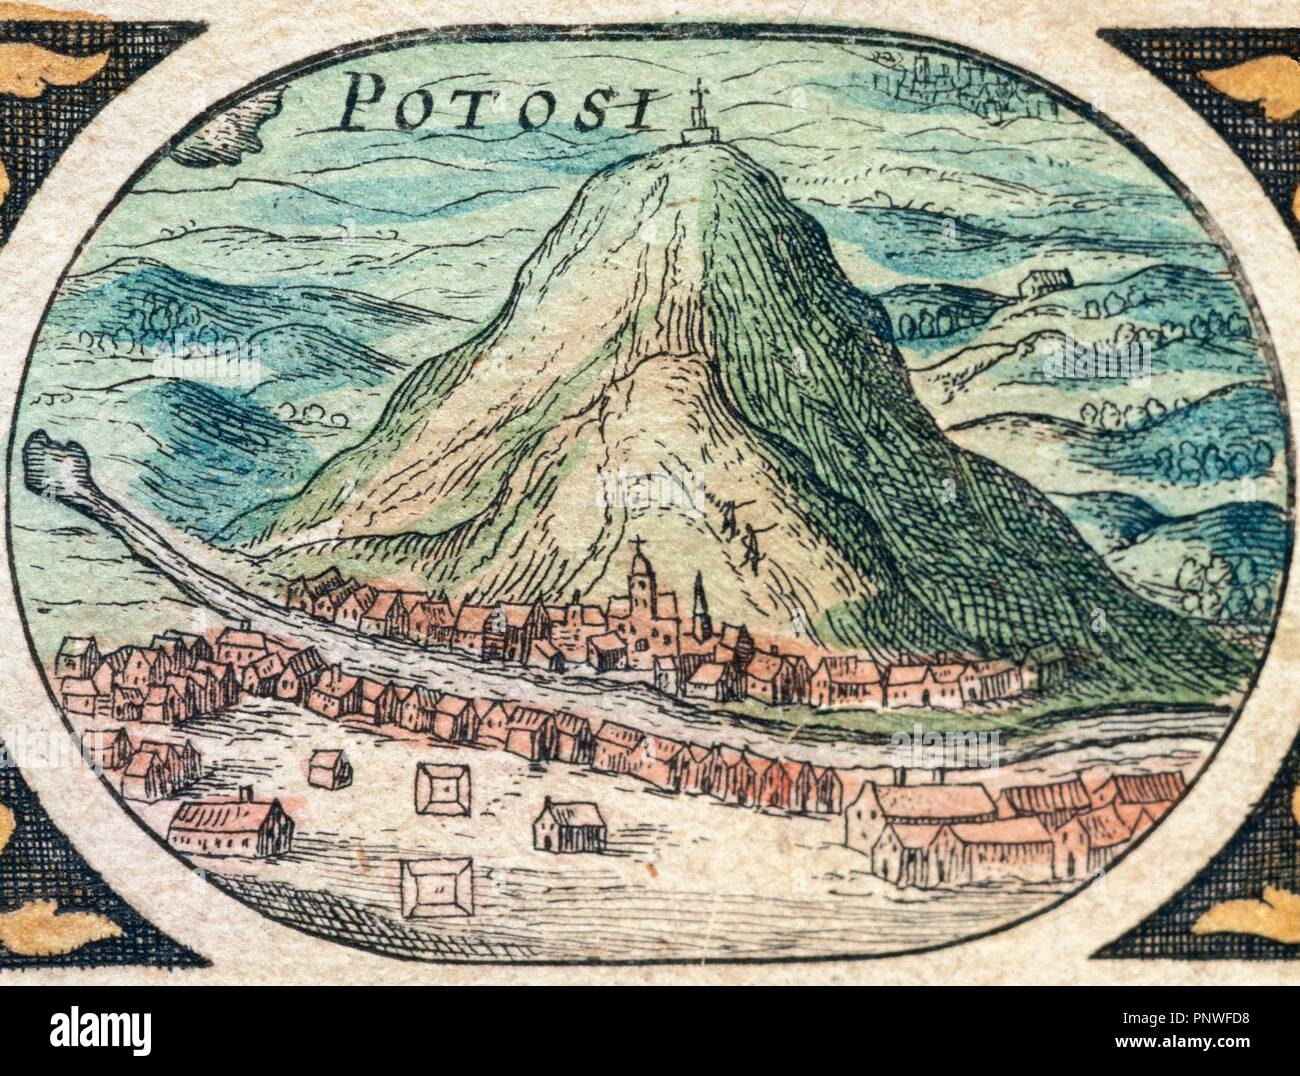 Bolivia. Potosi and the Cerro de Potosi (Rich mountain), also knows as the Cerro Rico. It is the reason for Potosi_'s historical importance, since it was the major supply of silver for Spain during the period of the New World Spanish Empire. Dutch engraving, 1645. - Stock Image